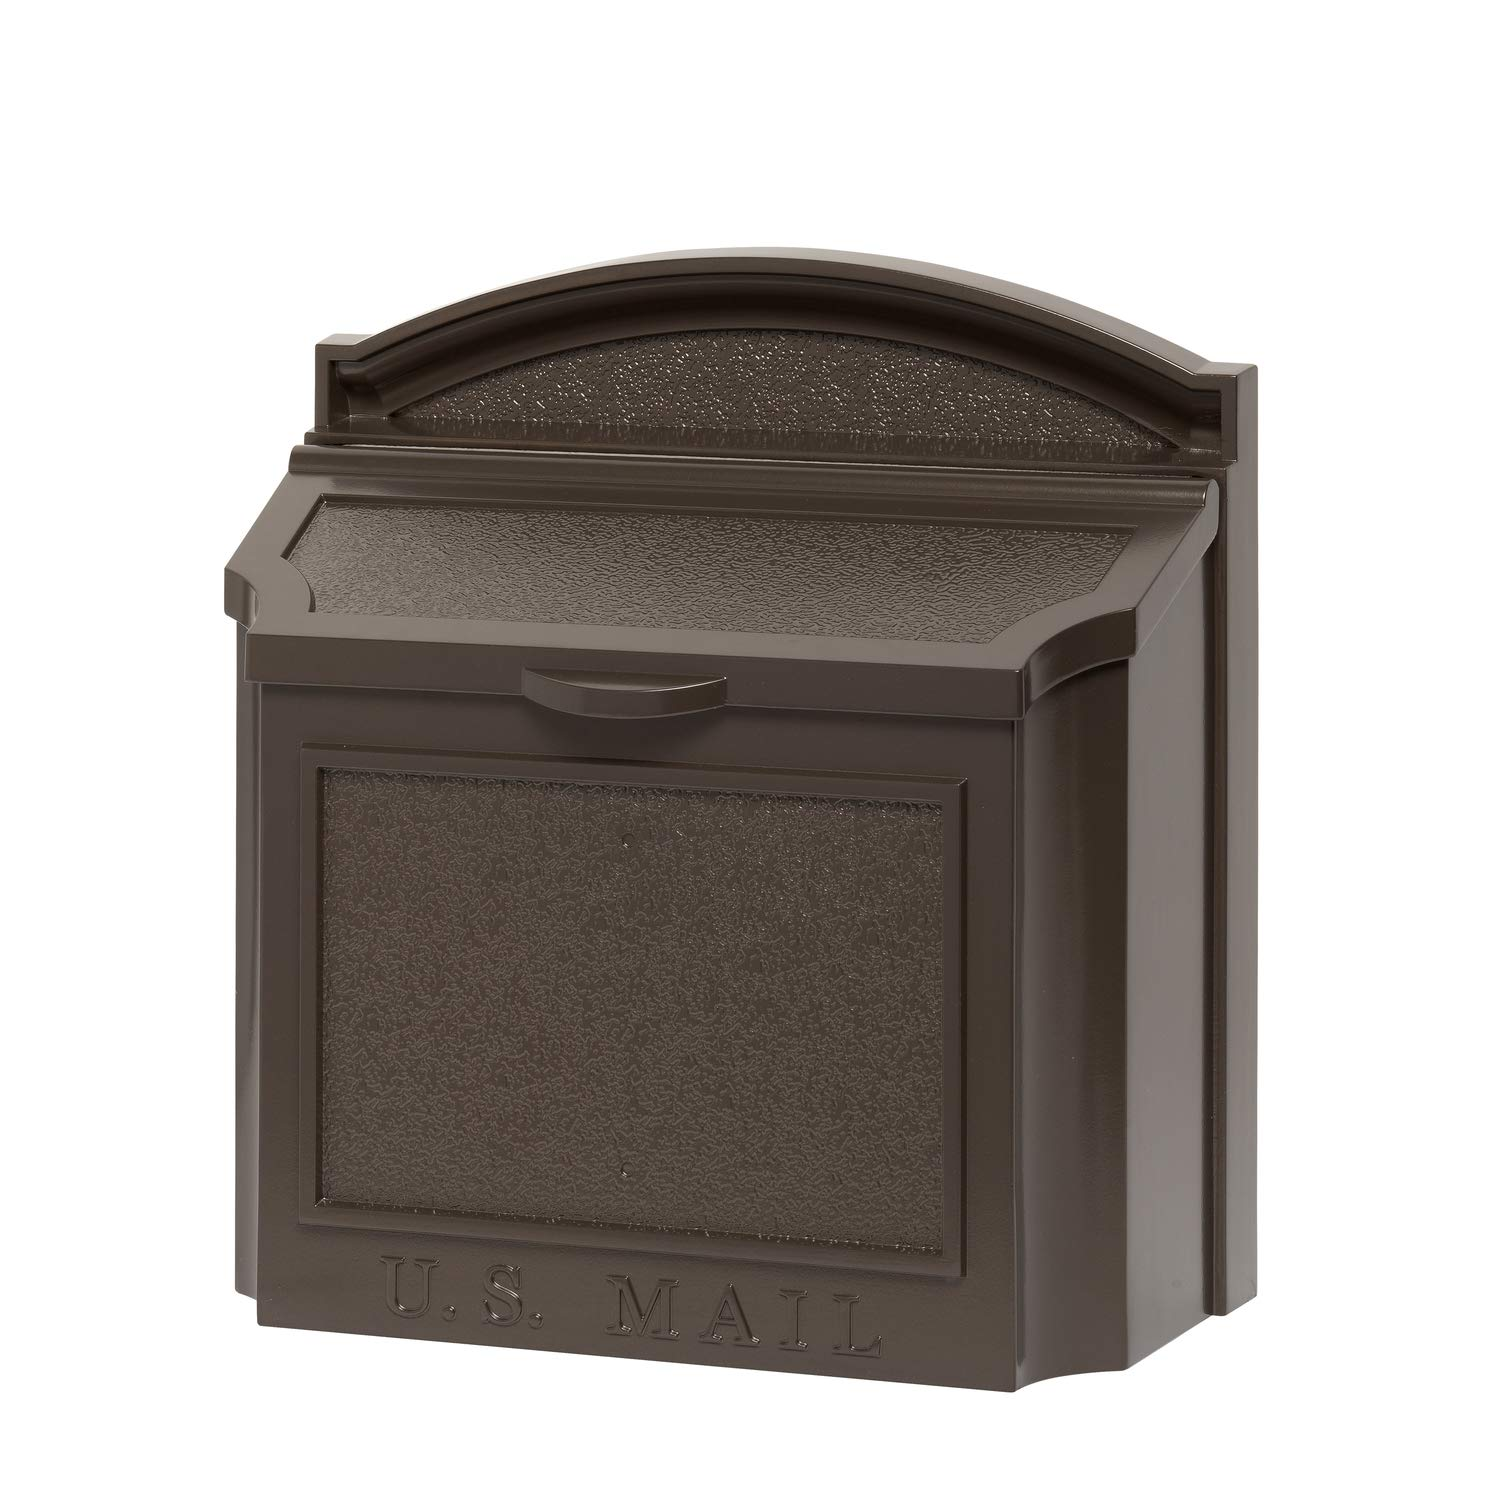 Whitehall Products 16138 Wall Mailbox, French Bronze